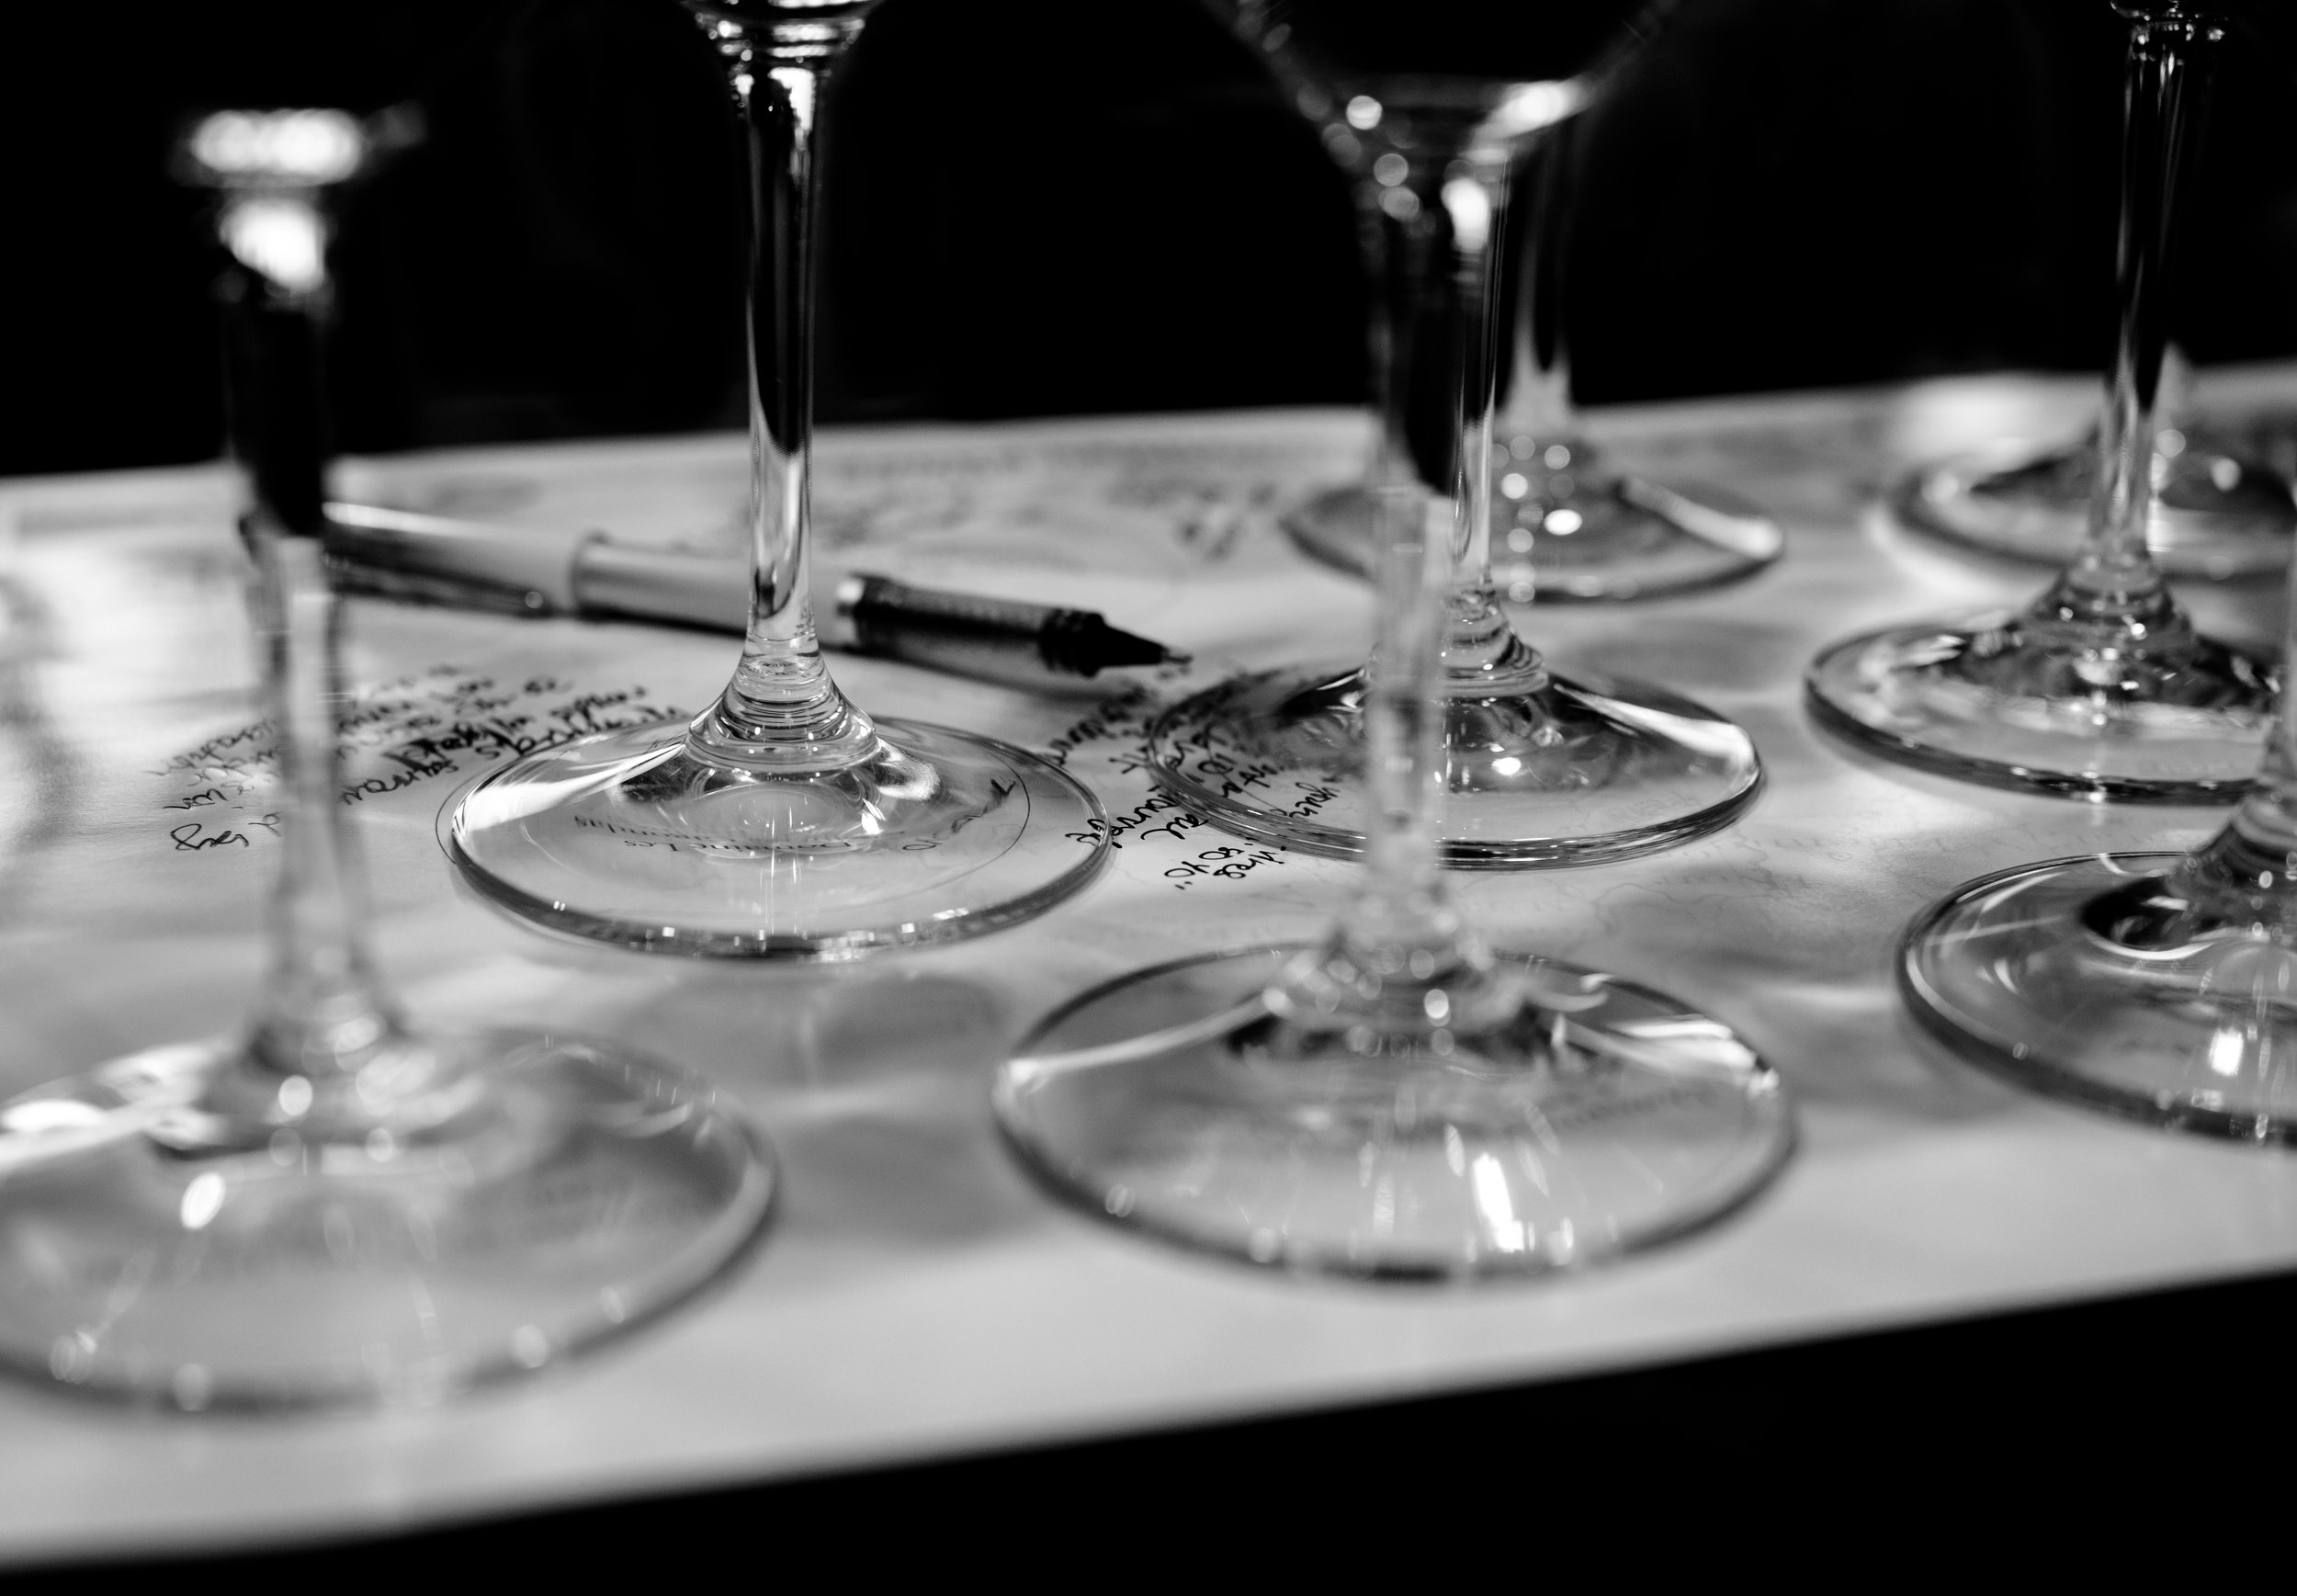 Musings by the Glass - Hawaii Food and Wine Festival - Wine Seminar Notetaking